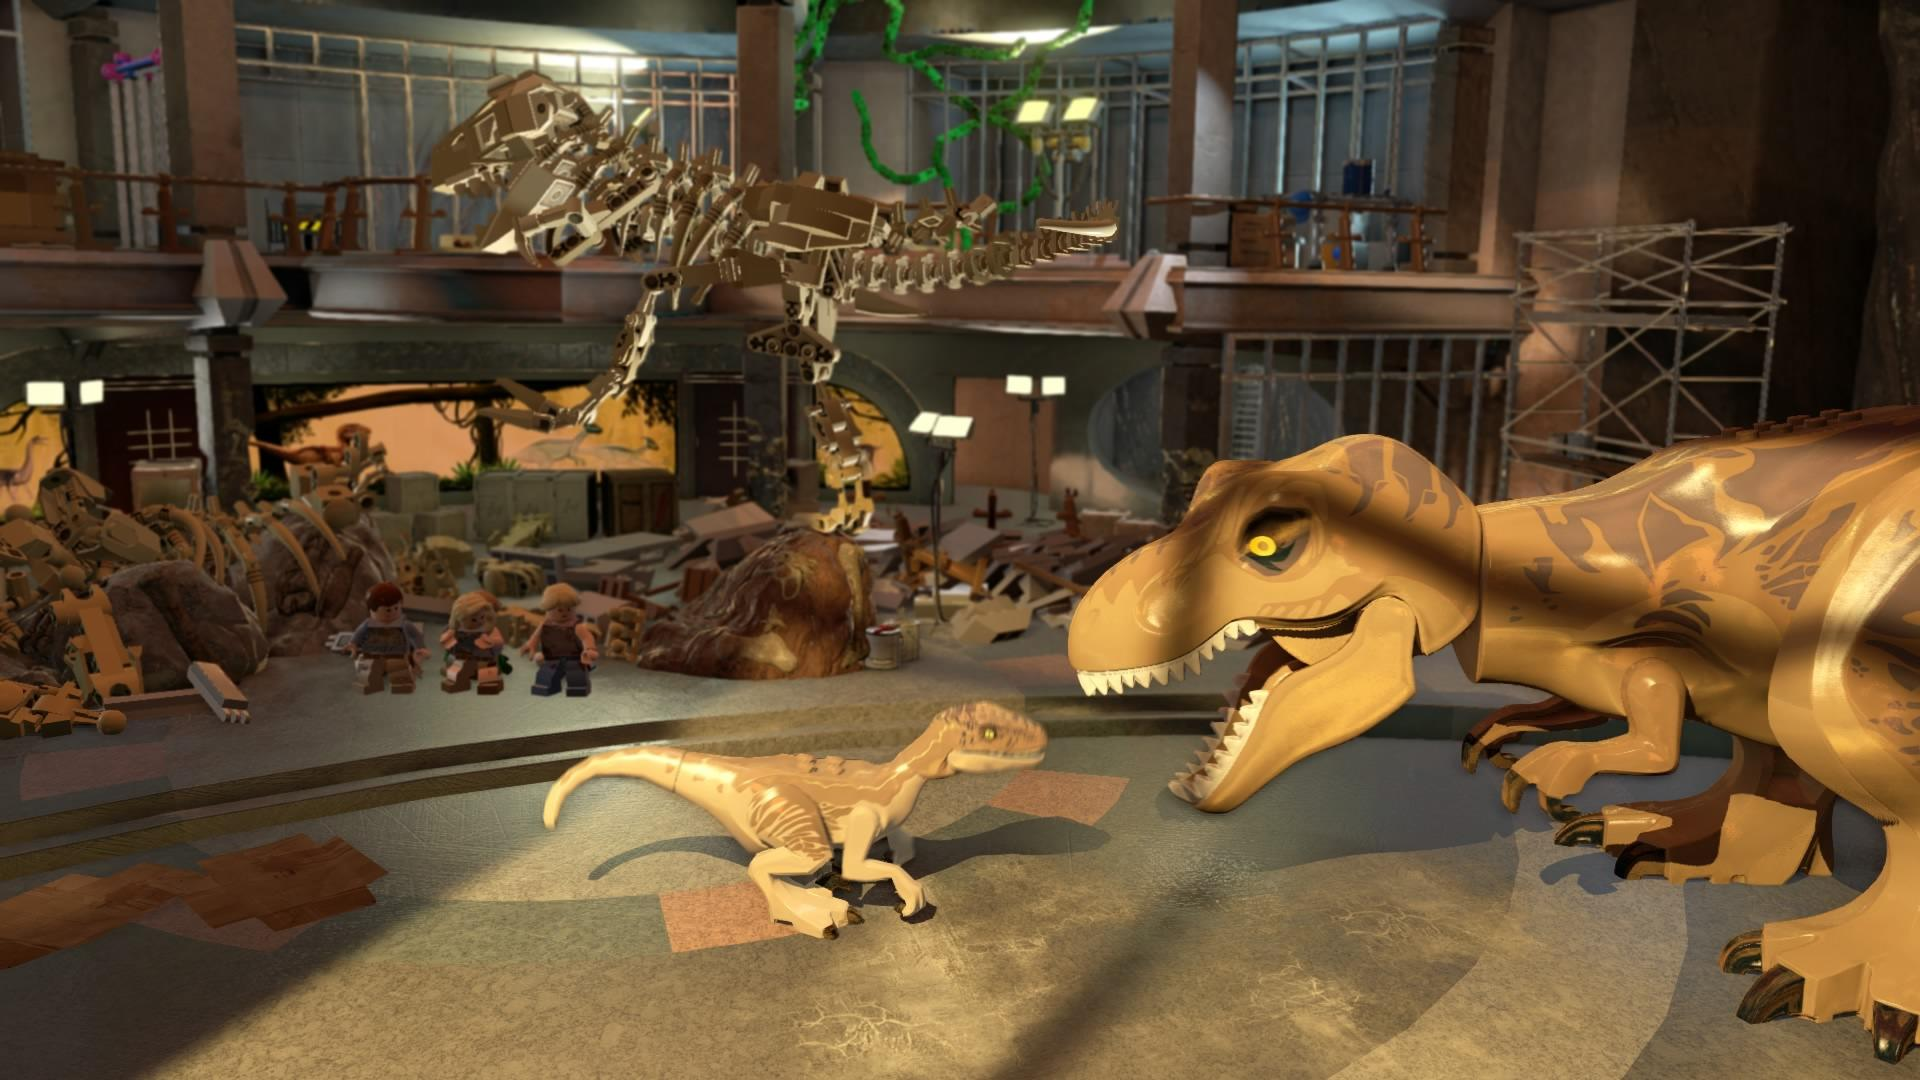 lego jurassic world wallpapers high quality  download free